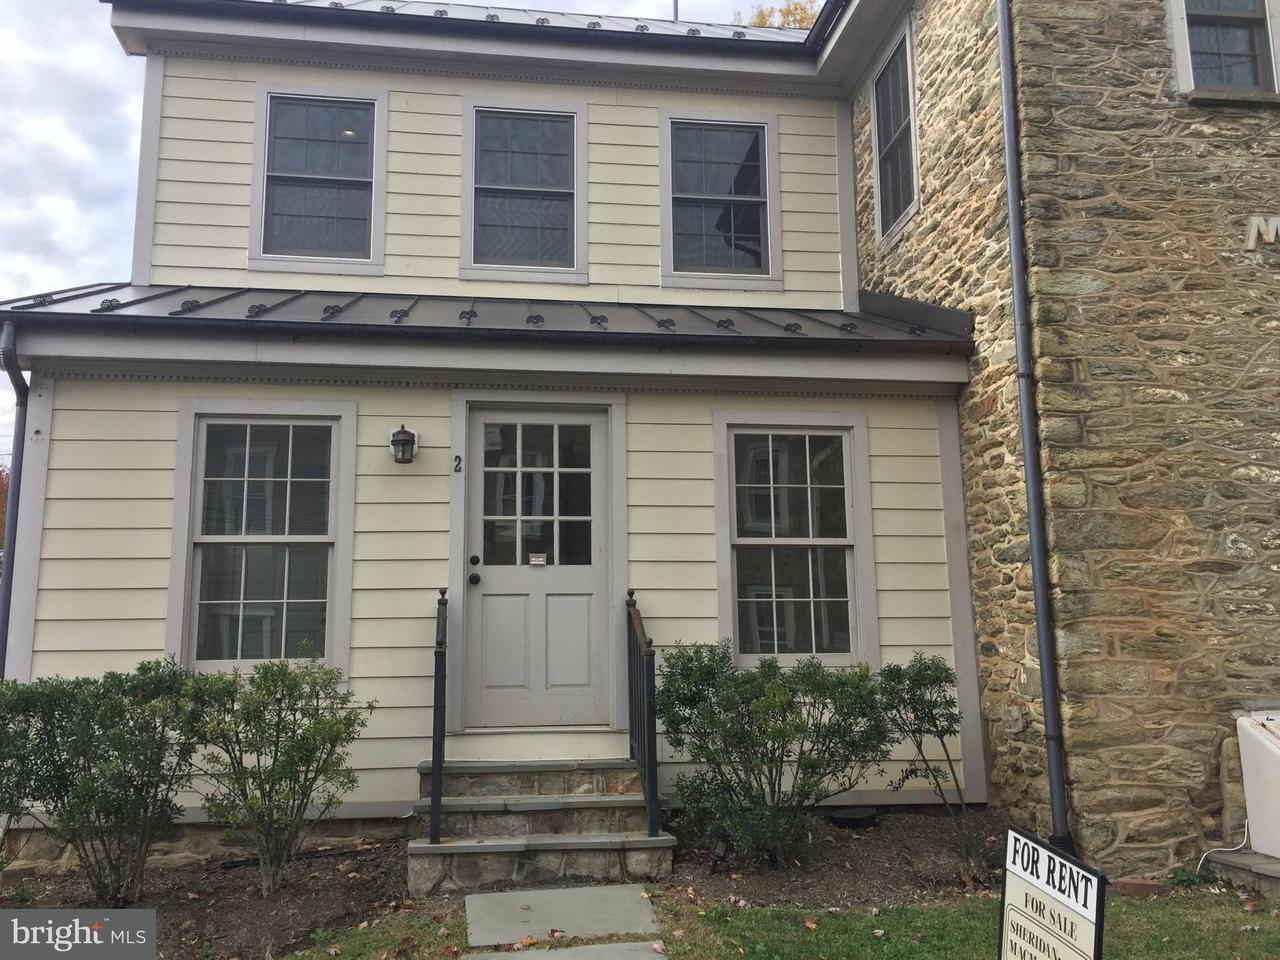 Other Residential for Rent at 111 Washington St Middleburg, Virginia 20117 United States